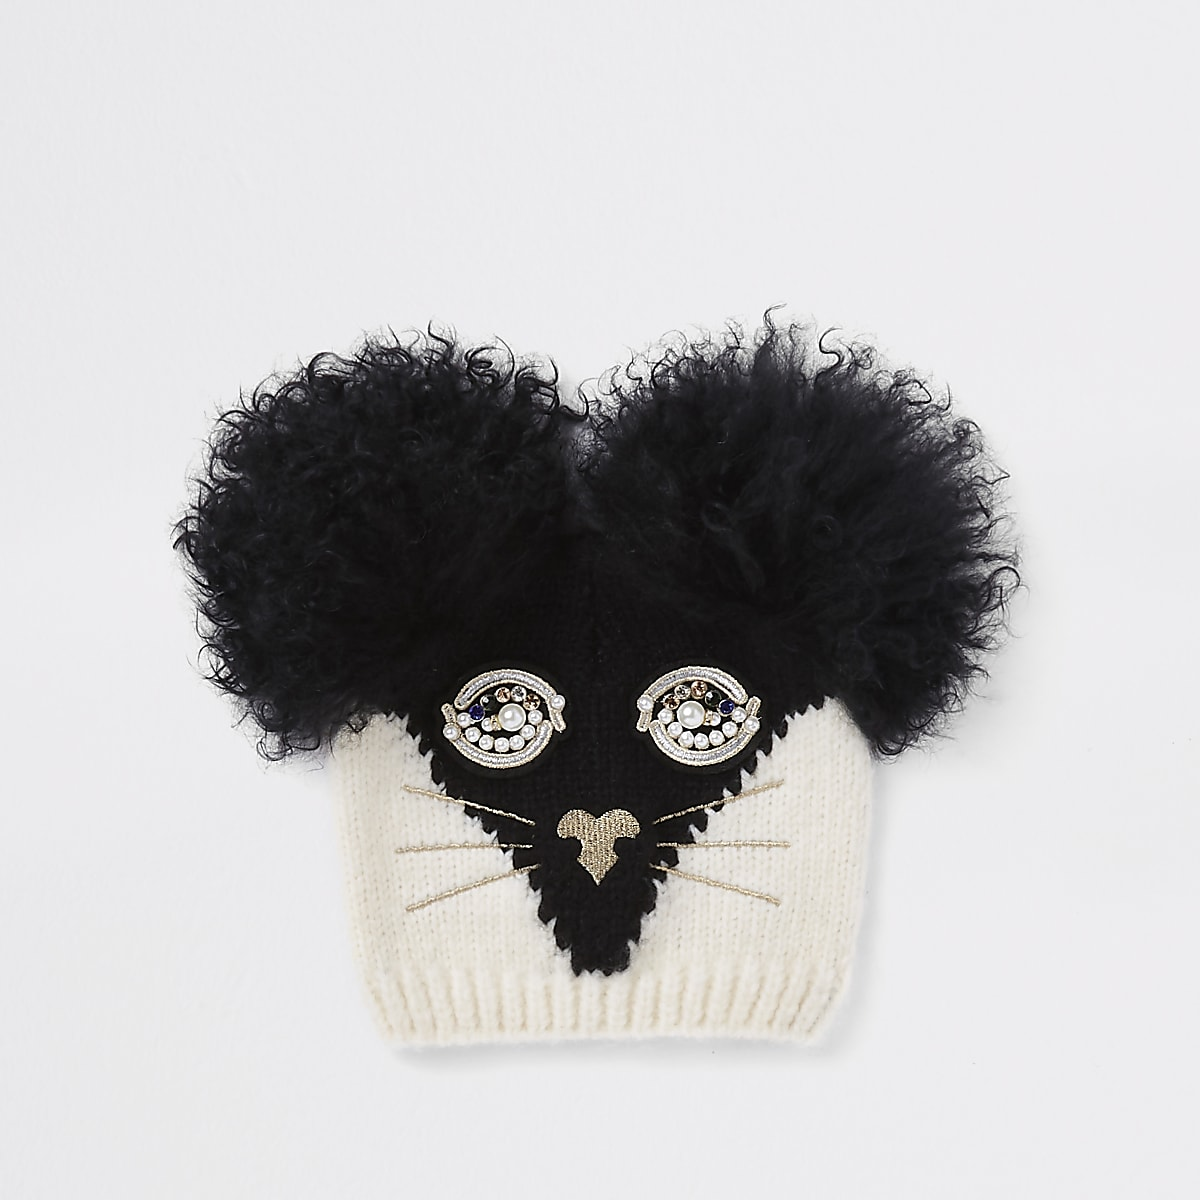 RI 30 girls black cat face beanie hat